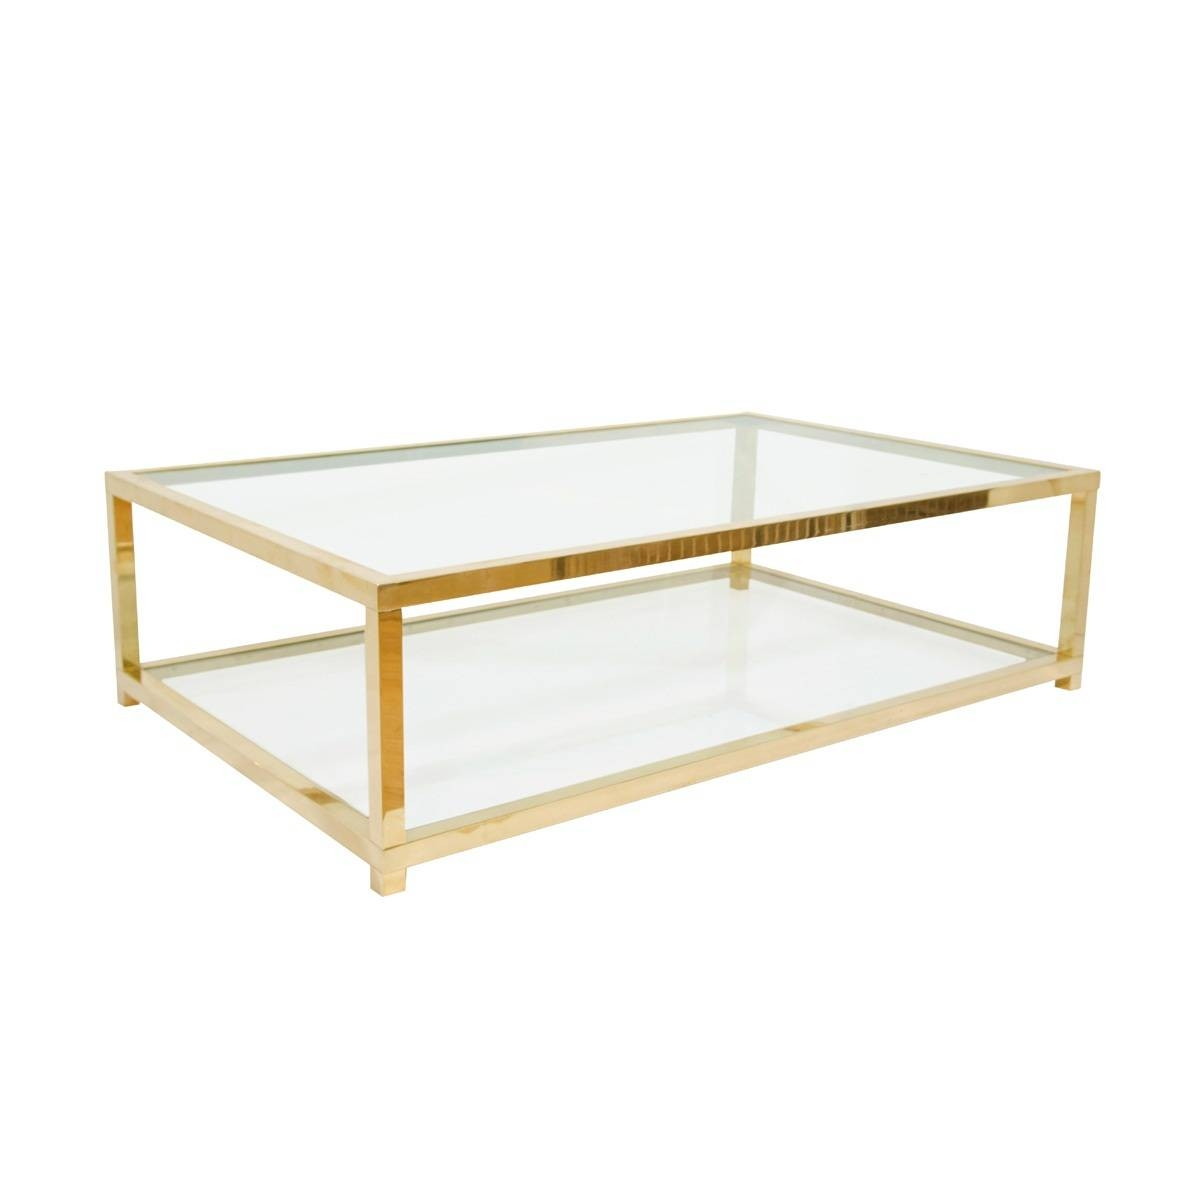 Brass Glass Coffee Table – Brass Glass Top Coffee Table, Elegant inside Antique Brass Glass Coffee Tables (Image 9 of 37)